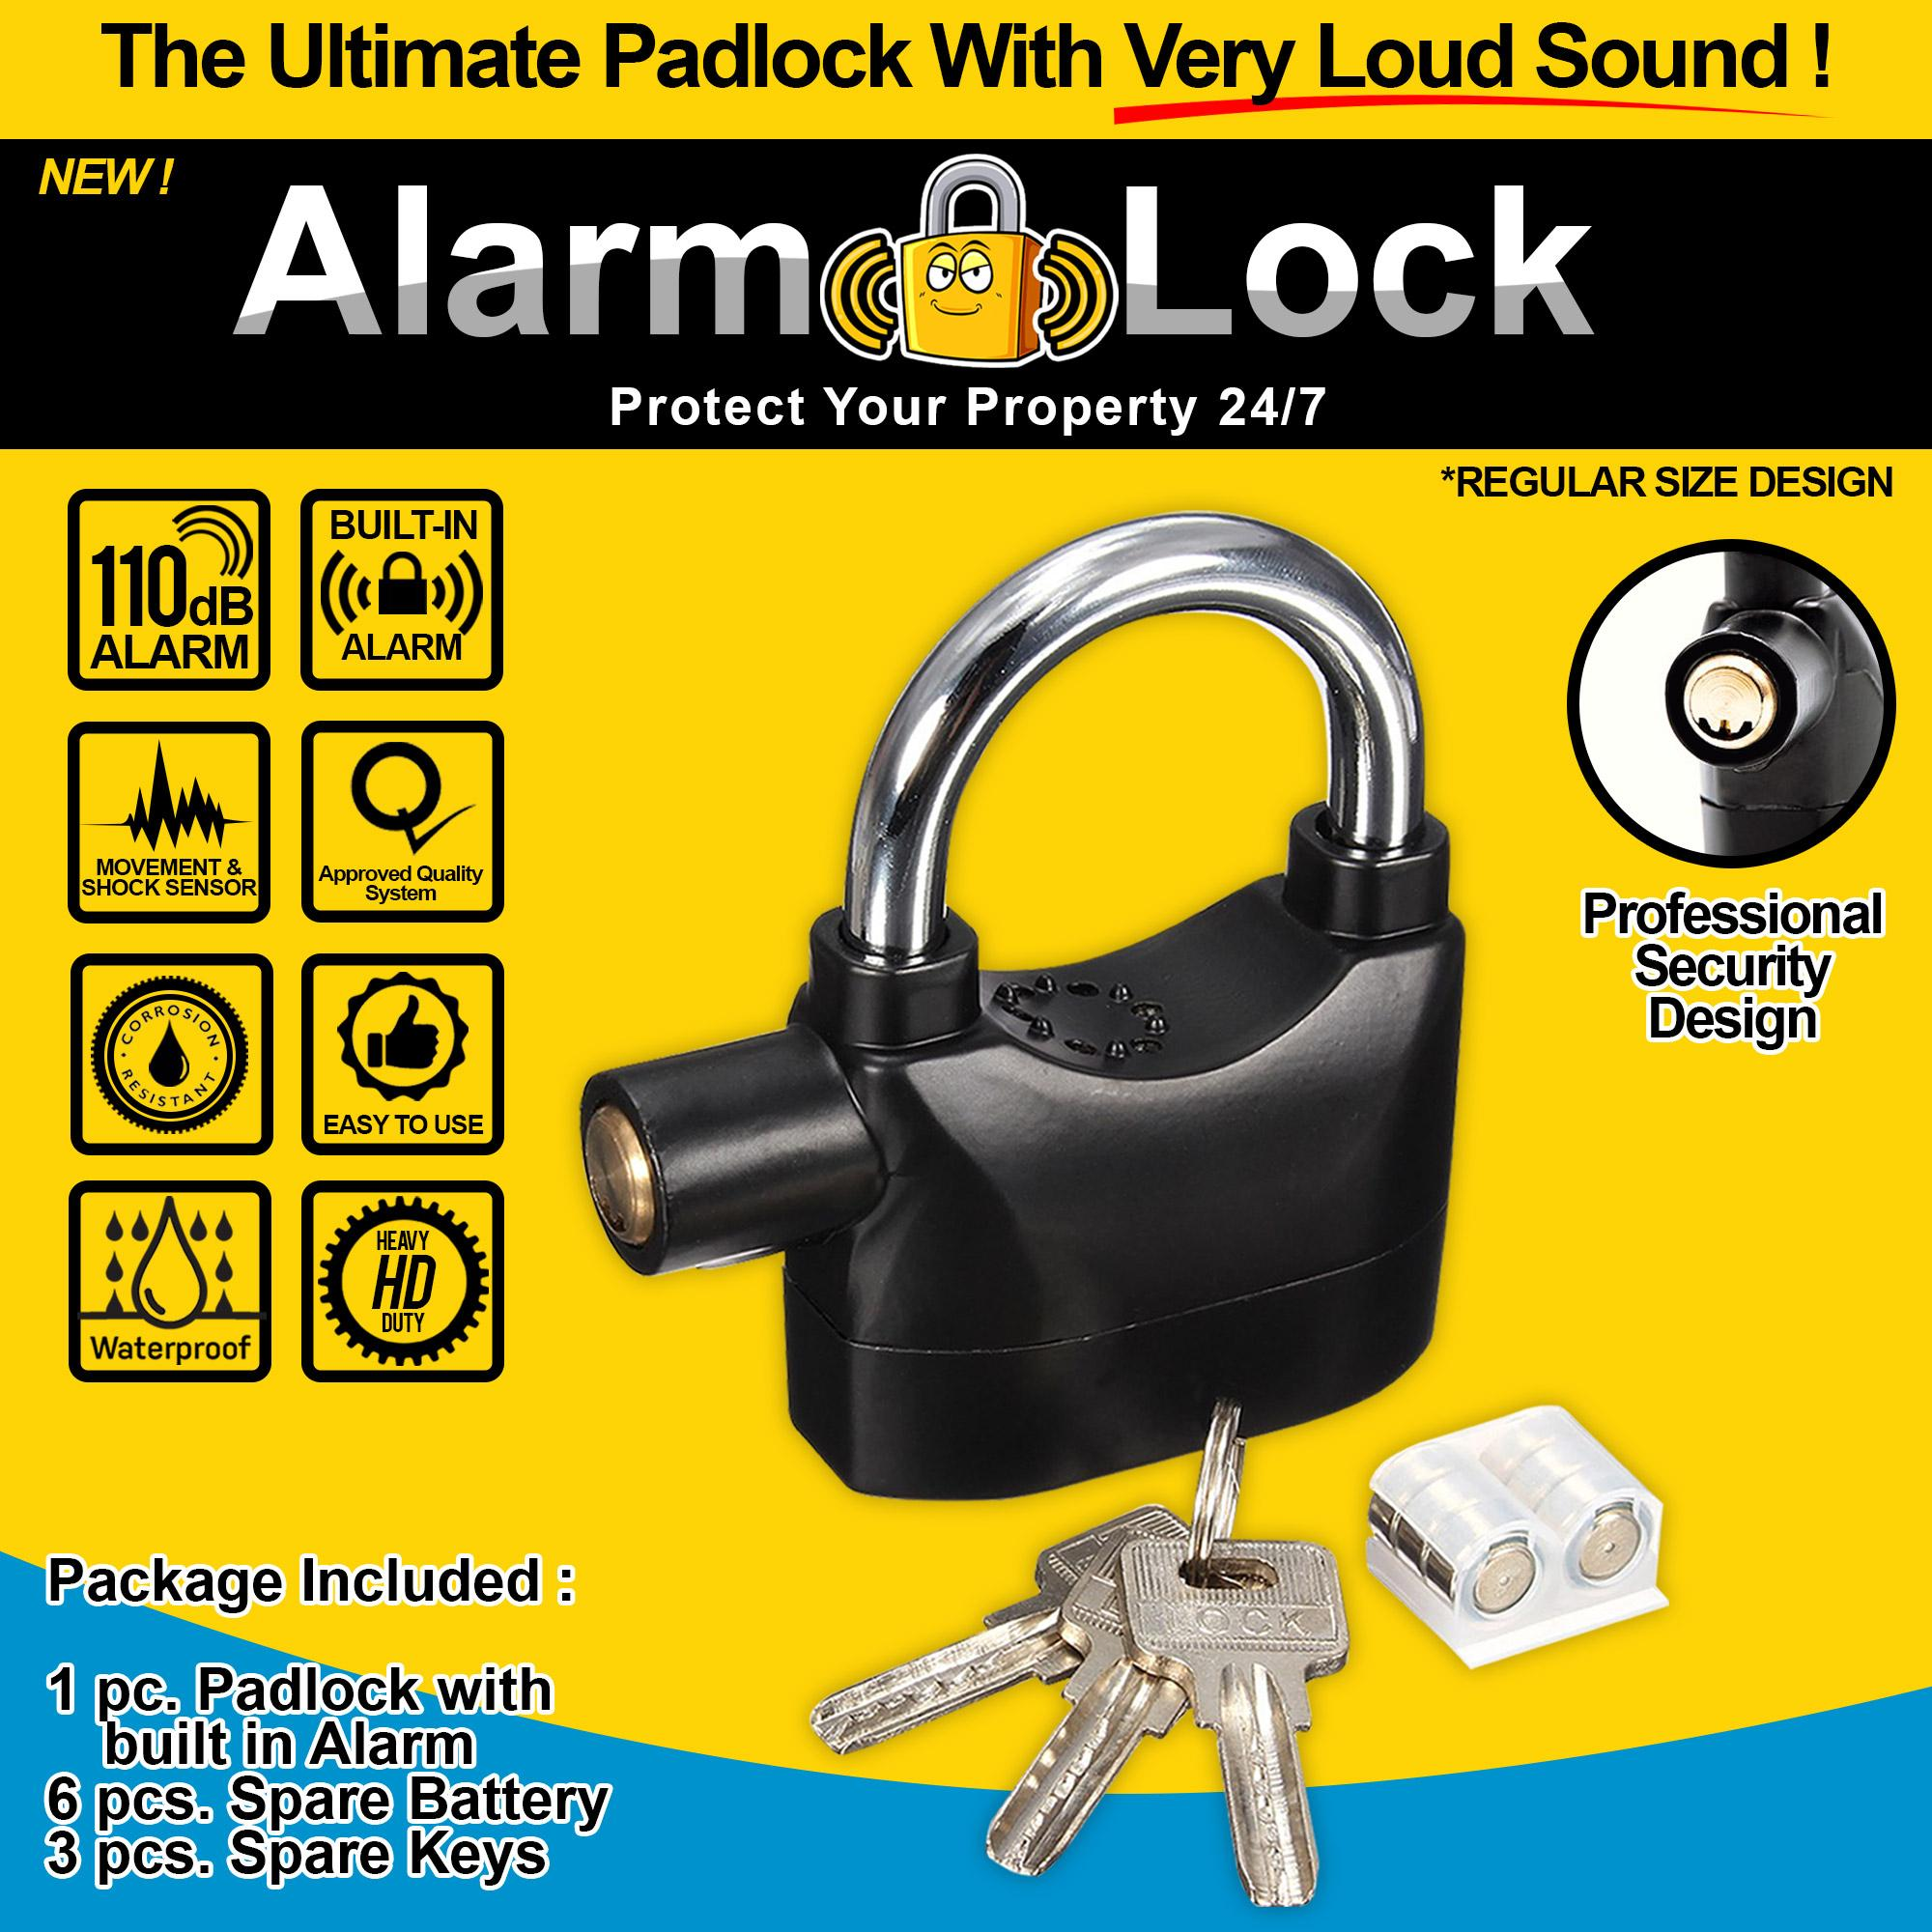 New High Quality Loud Siren Alarm Lock Anti Theft Security System Padlock  110Db Hardened Steel Great For Motorcycle , Electronic Bike ,Bicycle &  Other